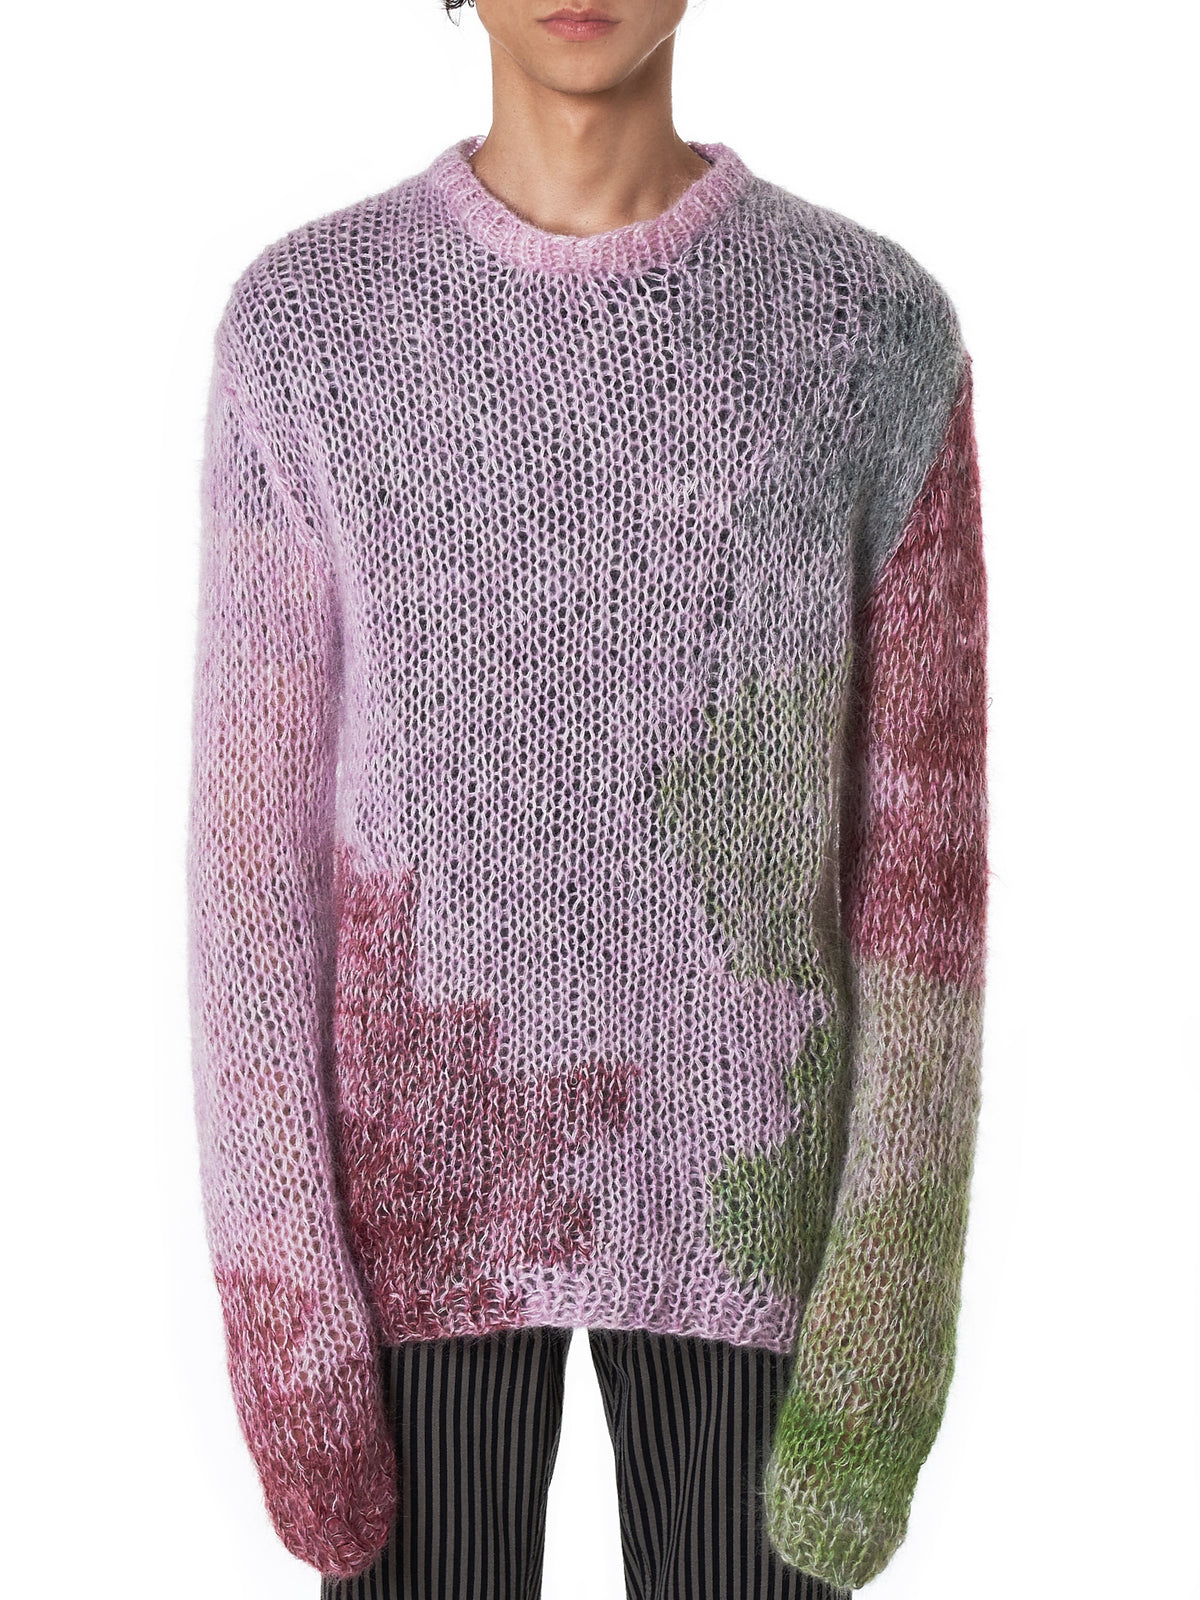 Ann Demeulemeester Knit Sweater - Hlorenzo Front